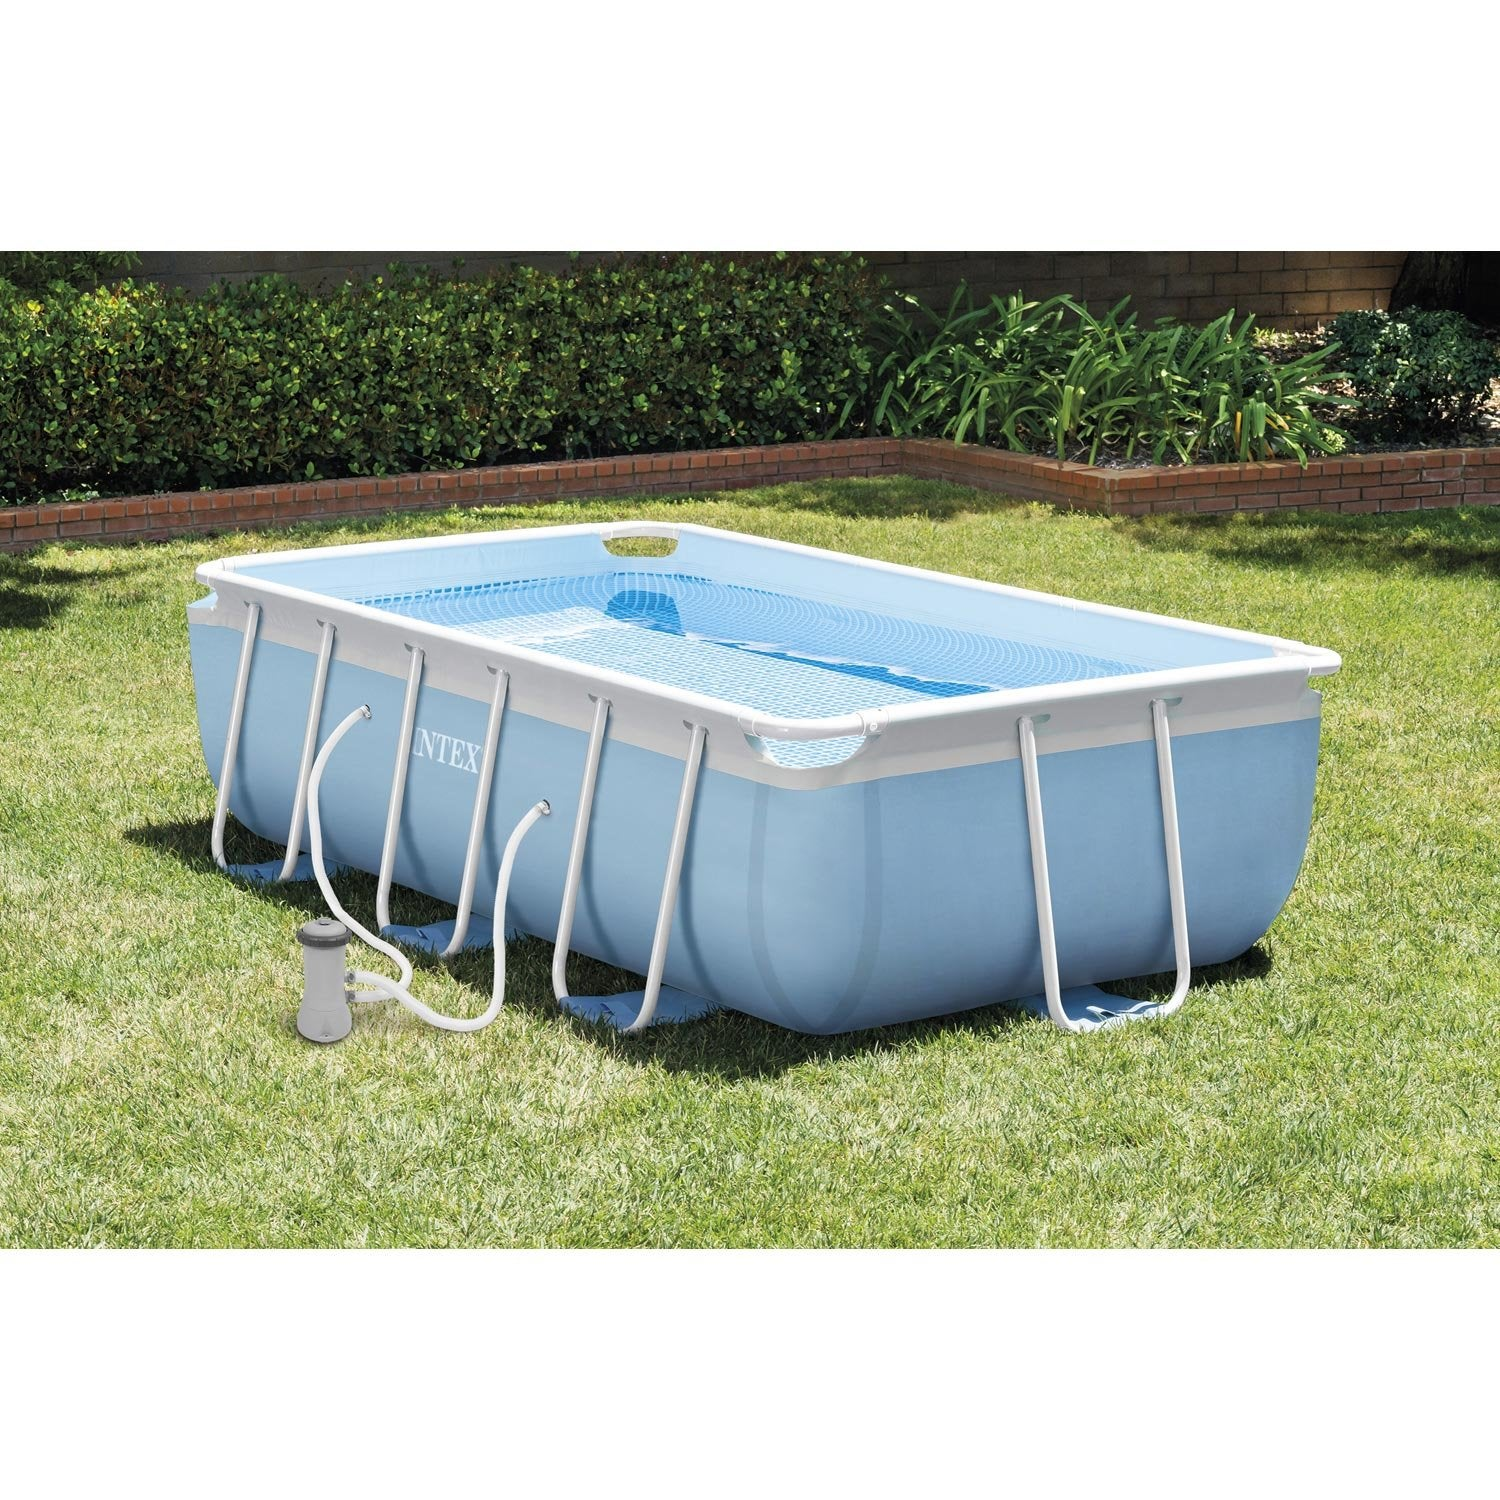 Piscine hors sol autoportante tubulaire intex l 3 4 x l 2 for Piscine auchan hors sol